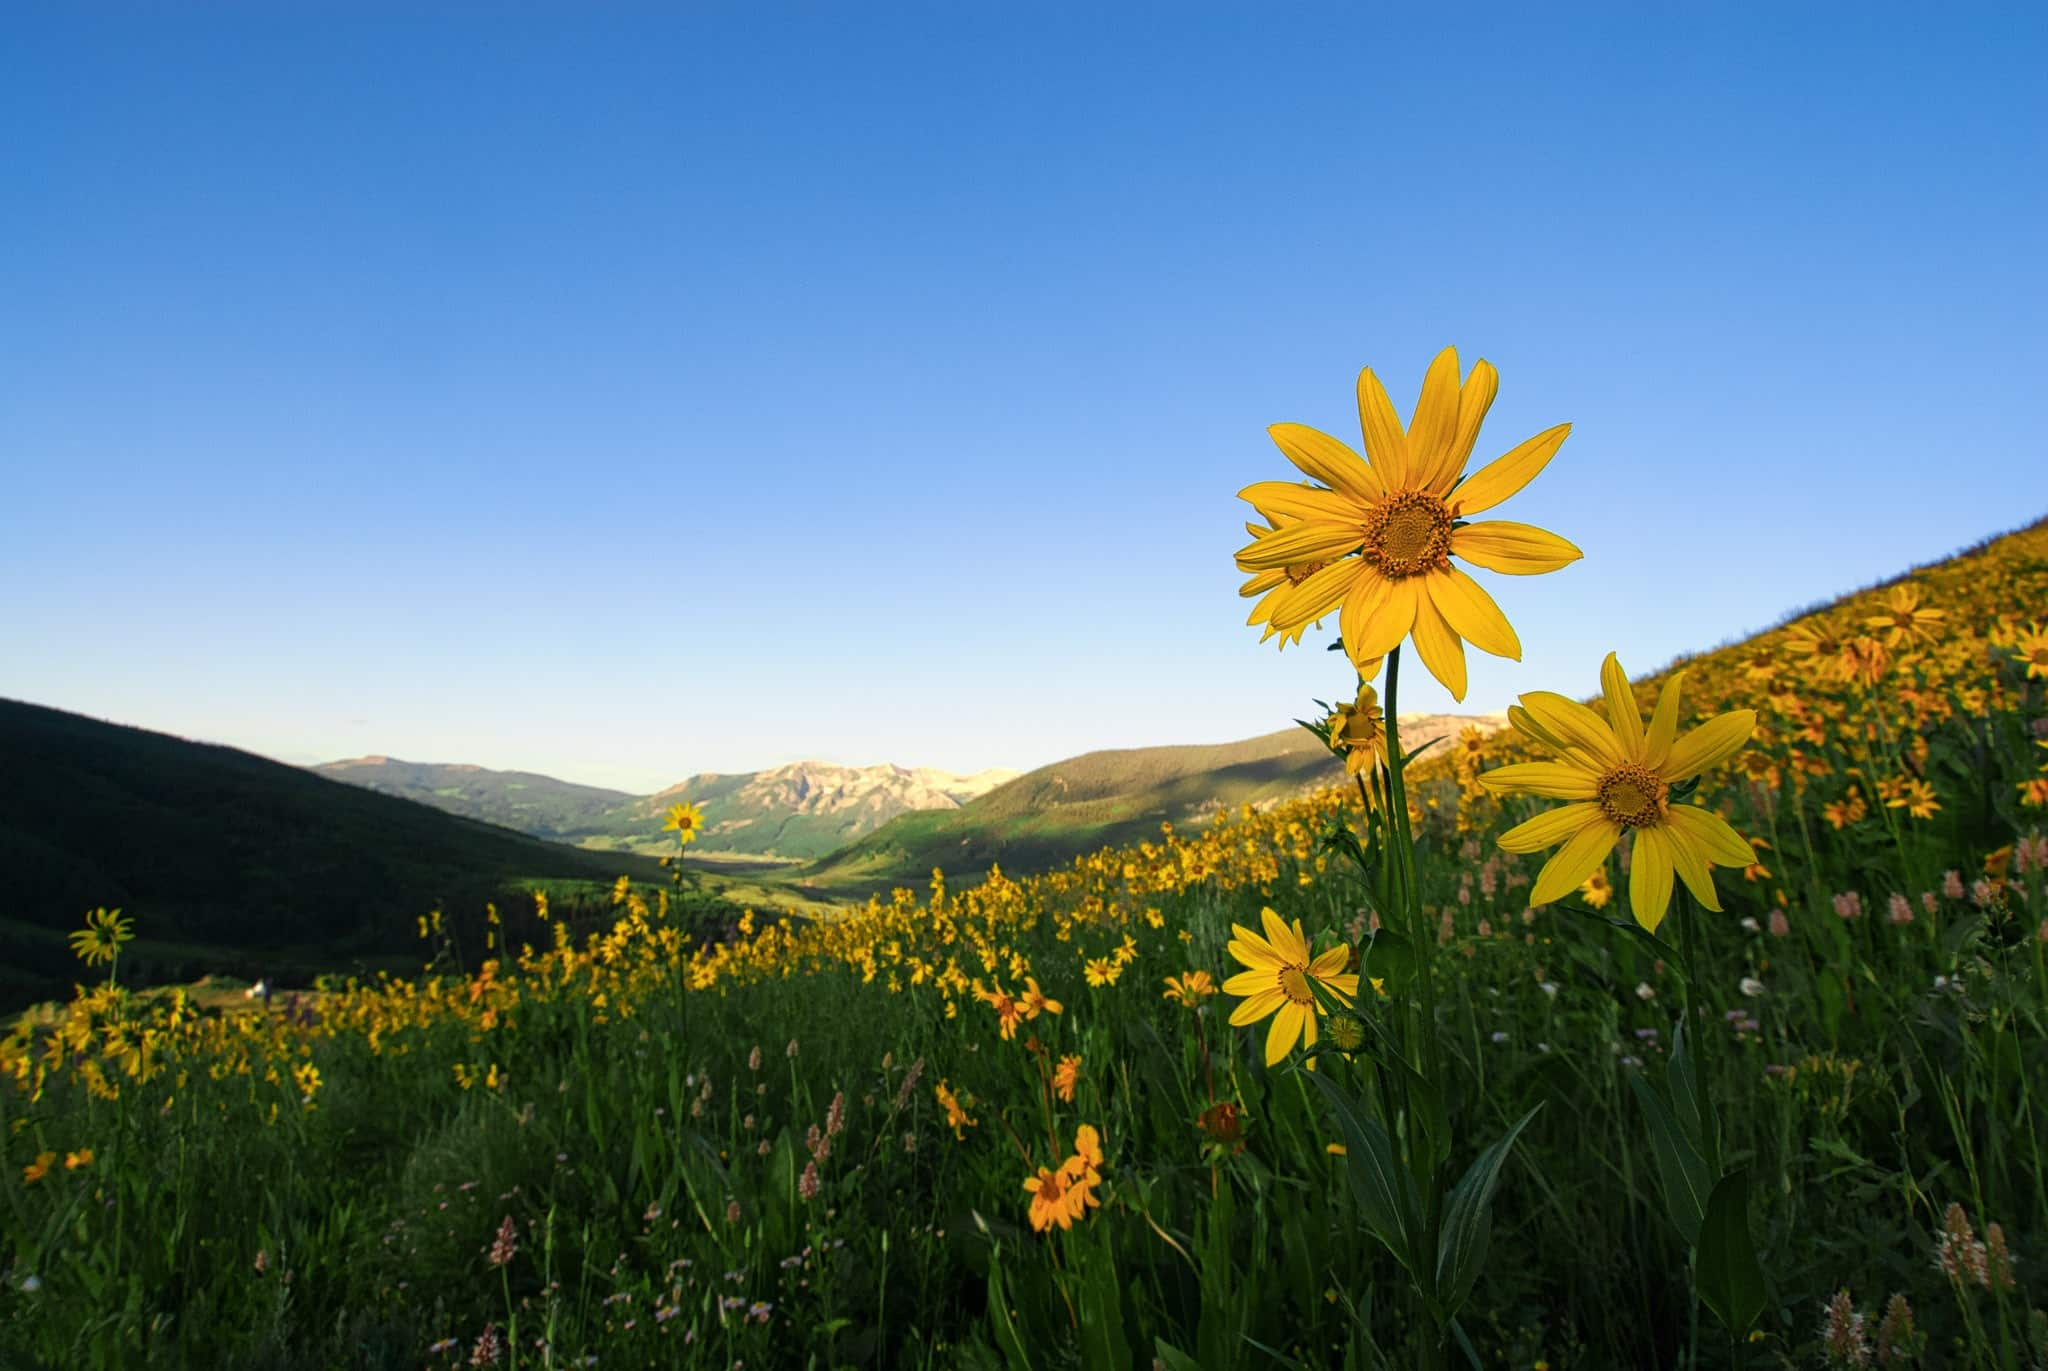 Aspen Sunflowers stand tall amongst the Mule's Ears and Sneezeweed, along West Brush Creek Road near Mount Crested Butte, Colorado.